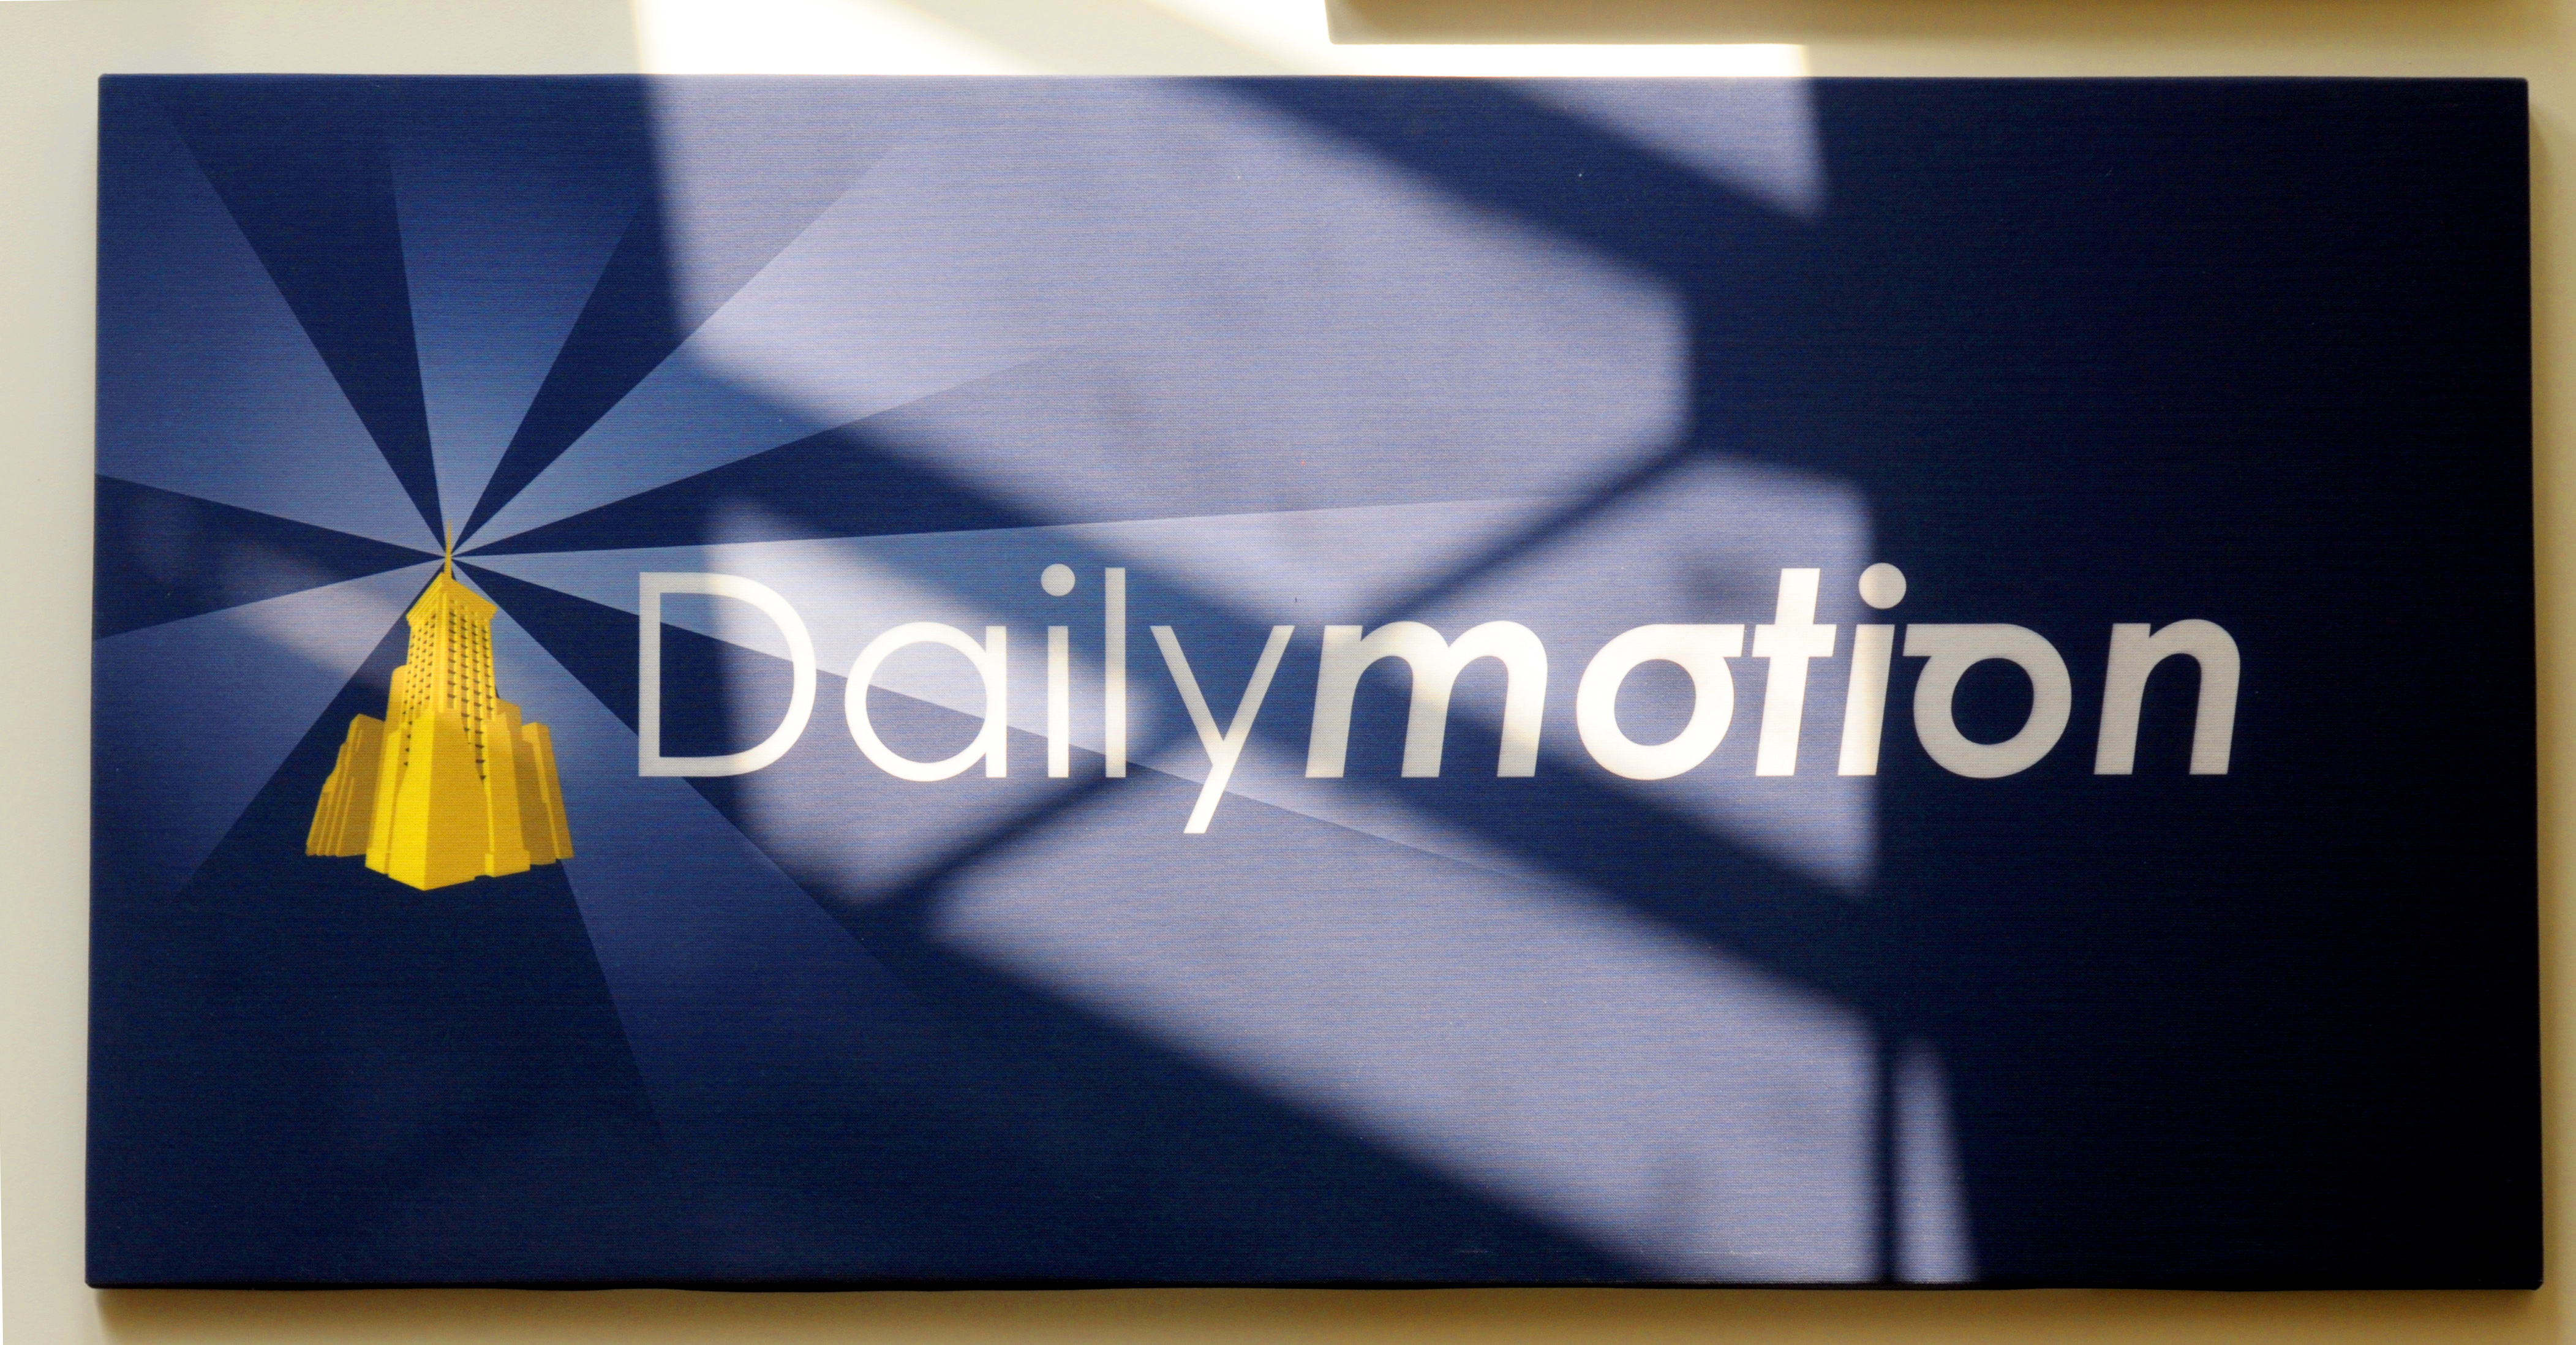 Dailymotion updates Android app with new design, navigation and video history